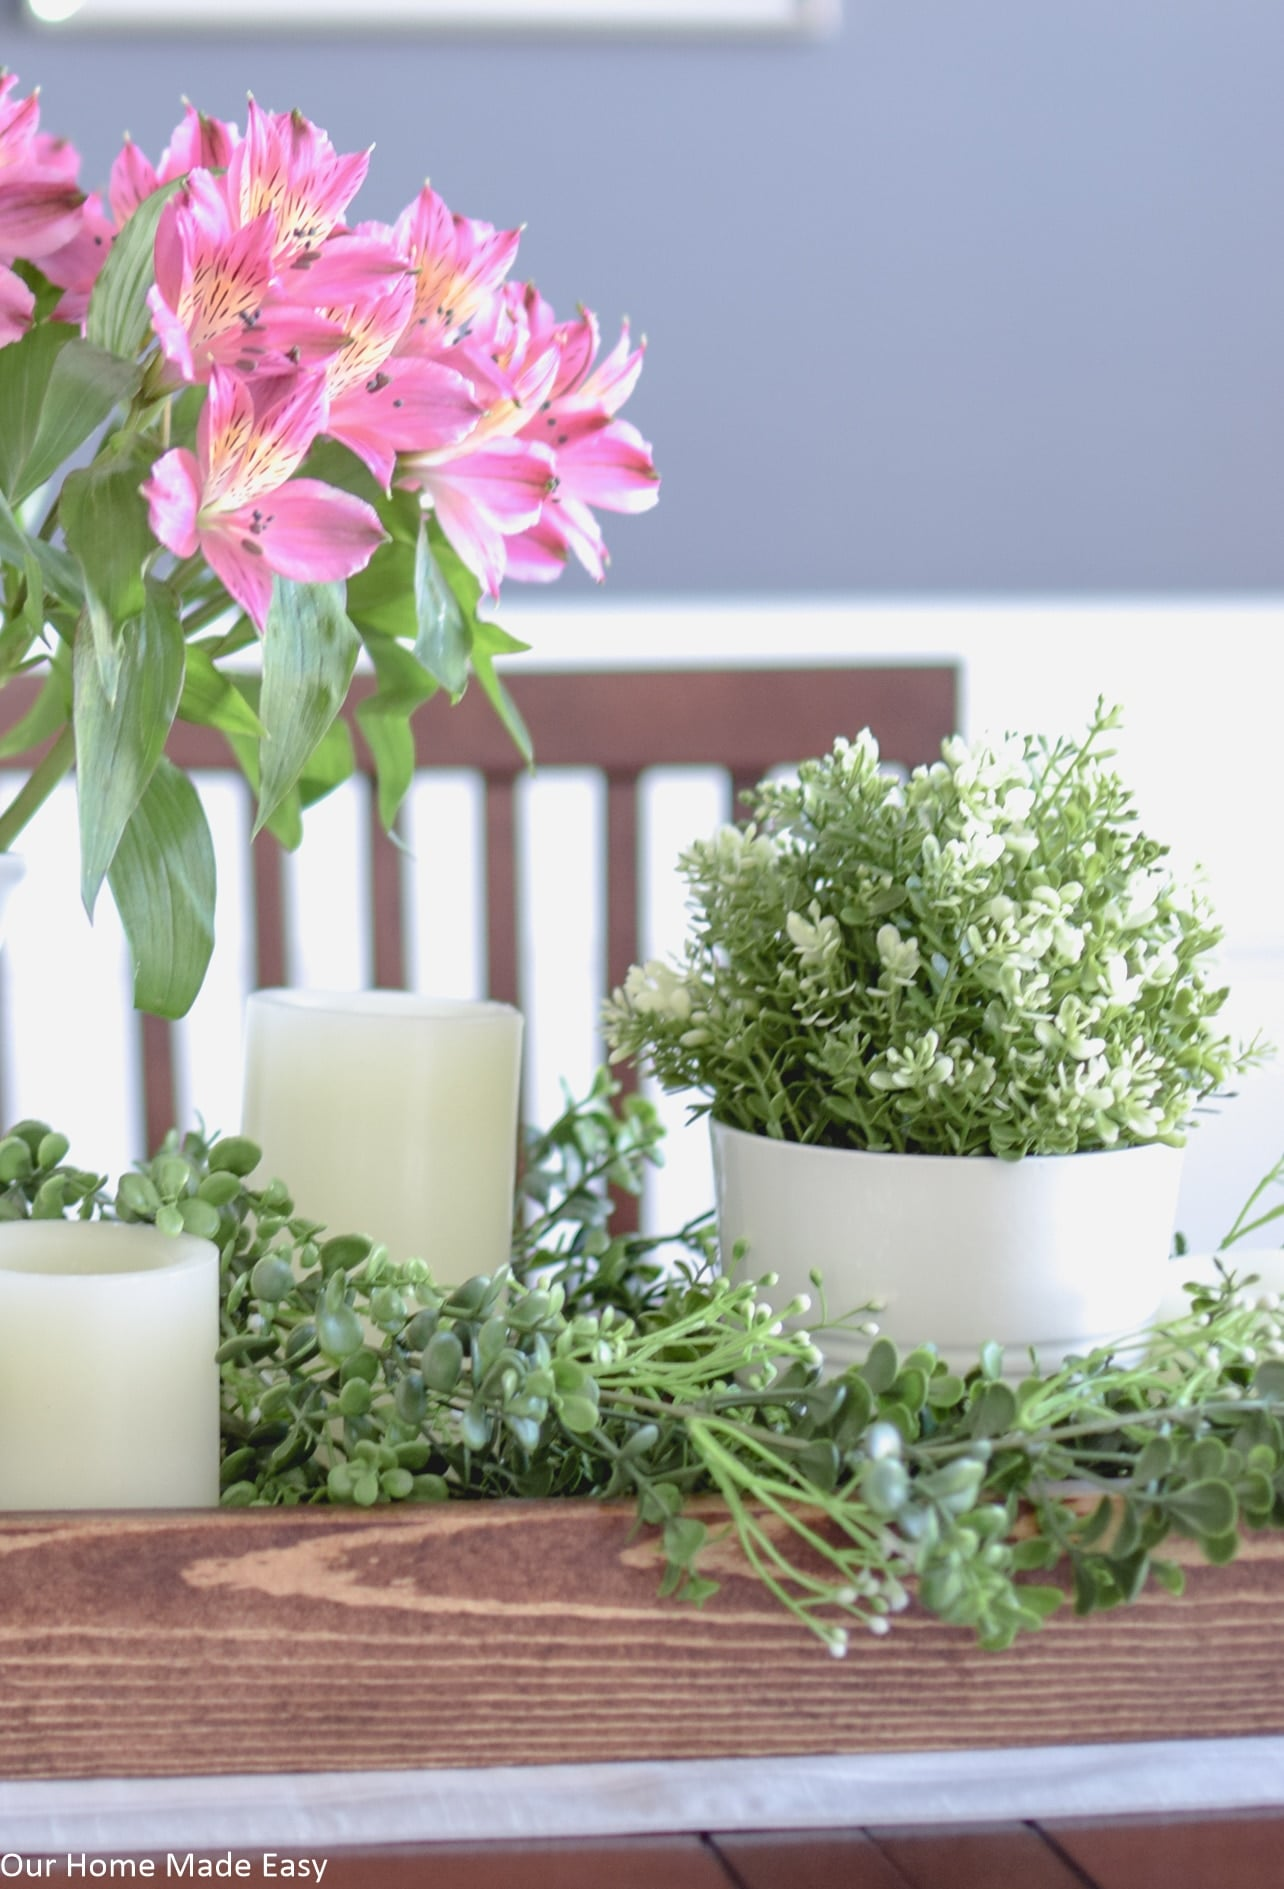 This easy Spring centerpiece is bright and colorful and brings a freshness to your home decor